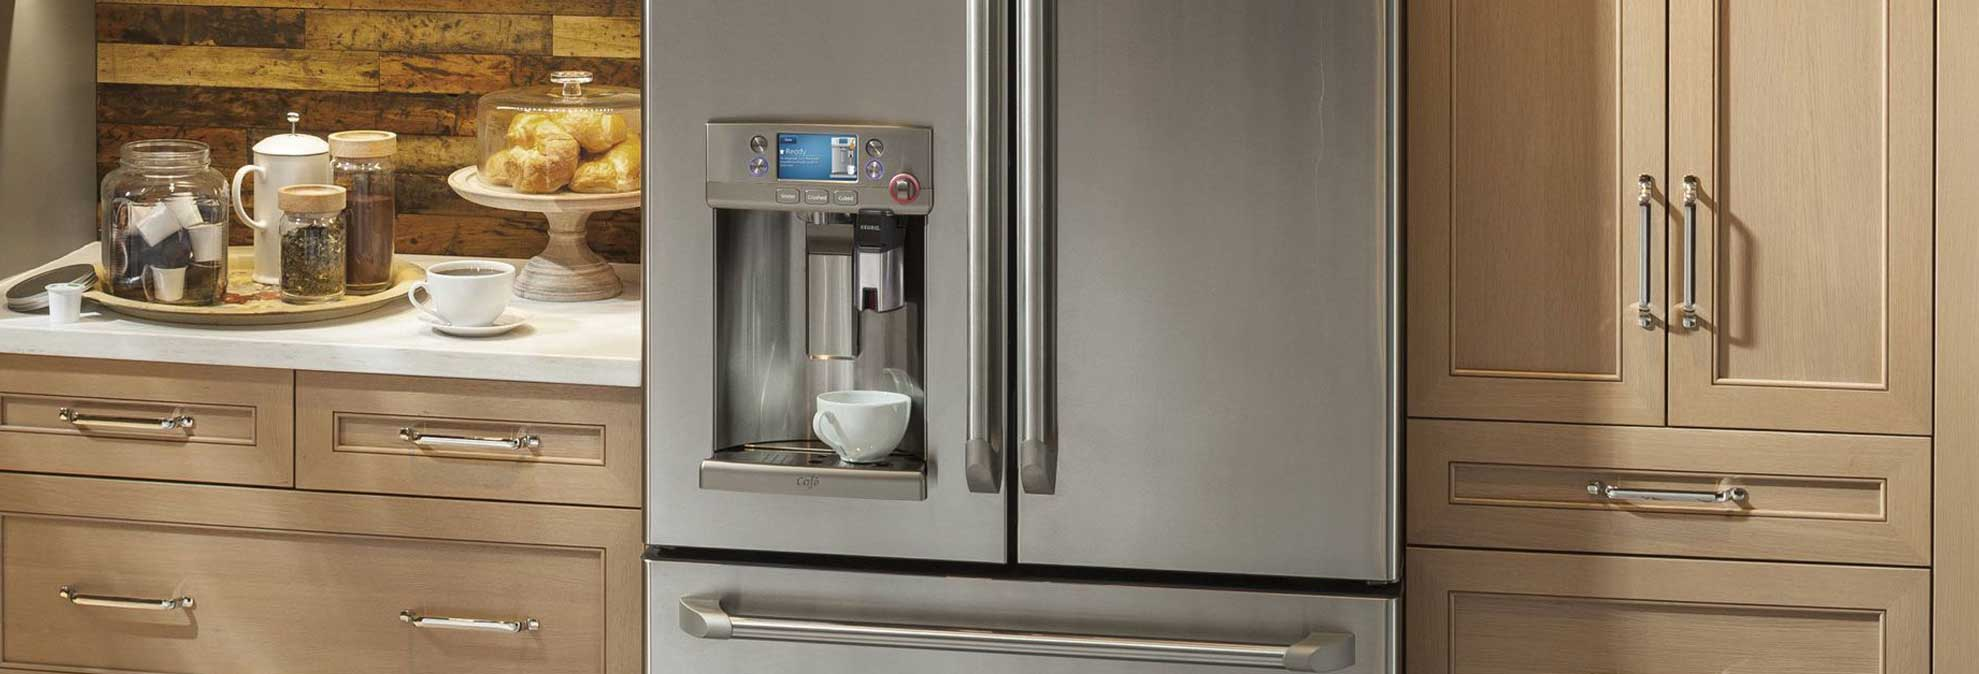 How To Choose Counter Depth Refrigerator For Kitchen – The Only 5 Brief Ways!